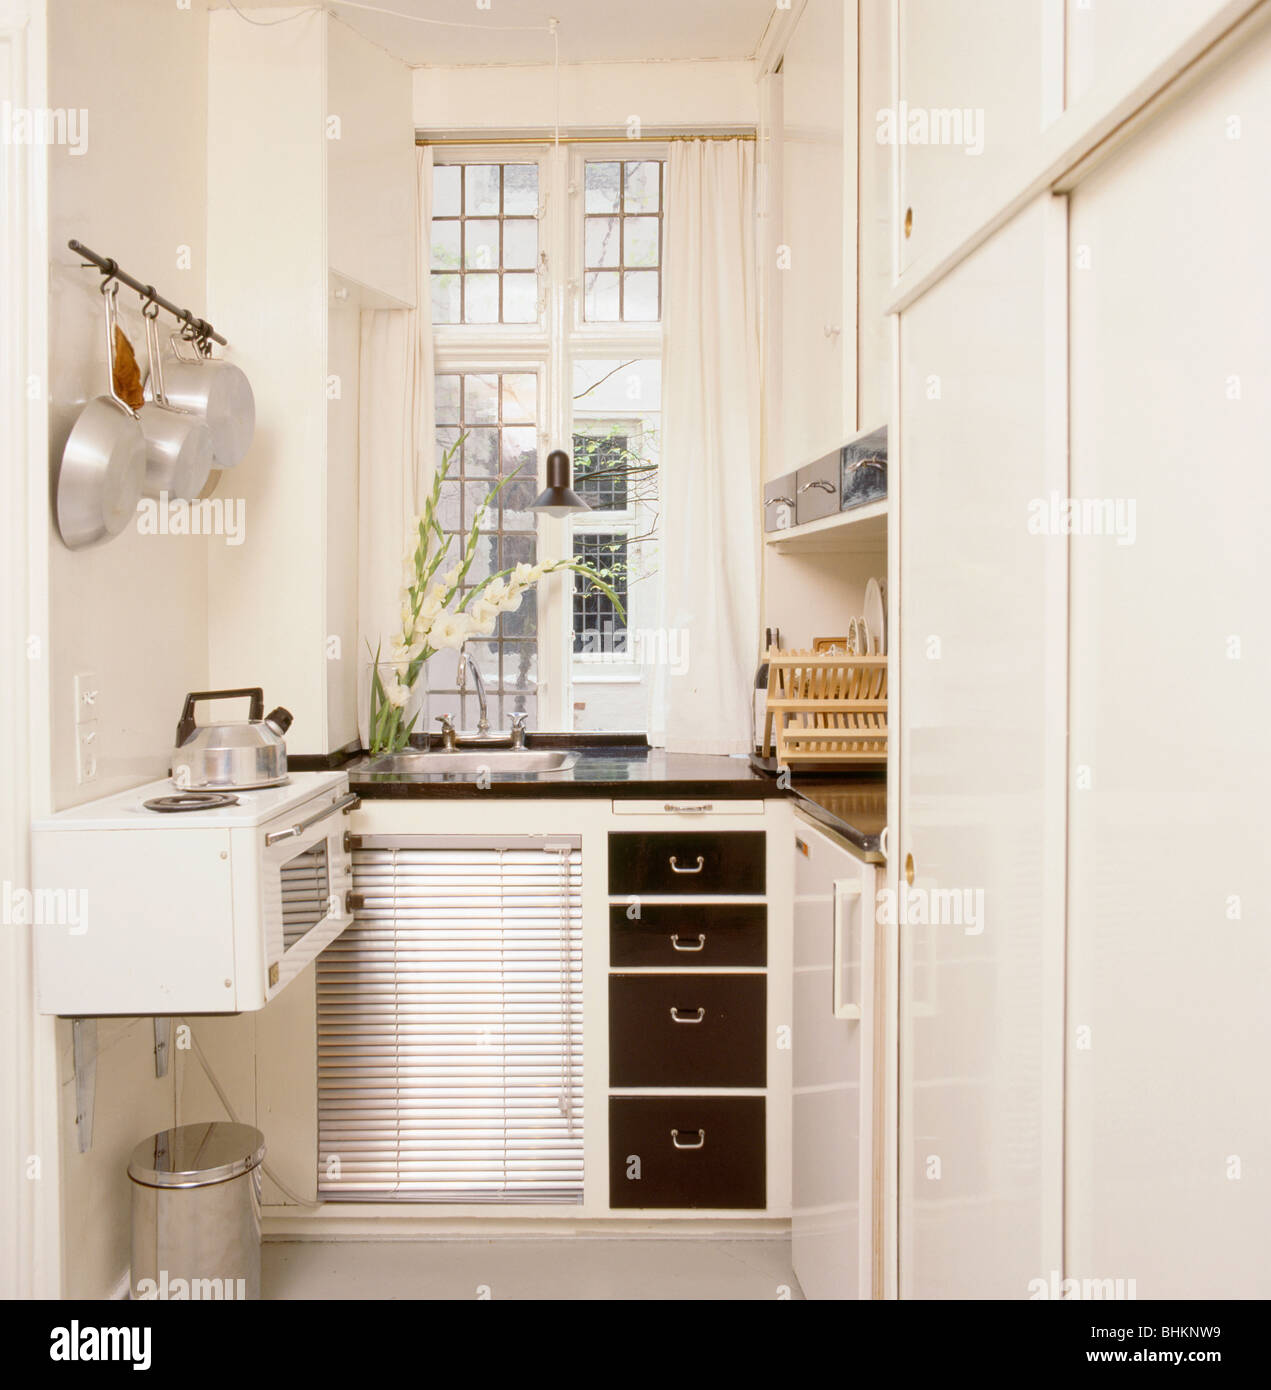 Kettle on hob of small wall-mounted oven in compact white kitchen ...